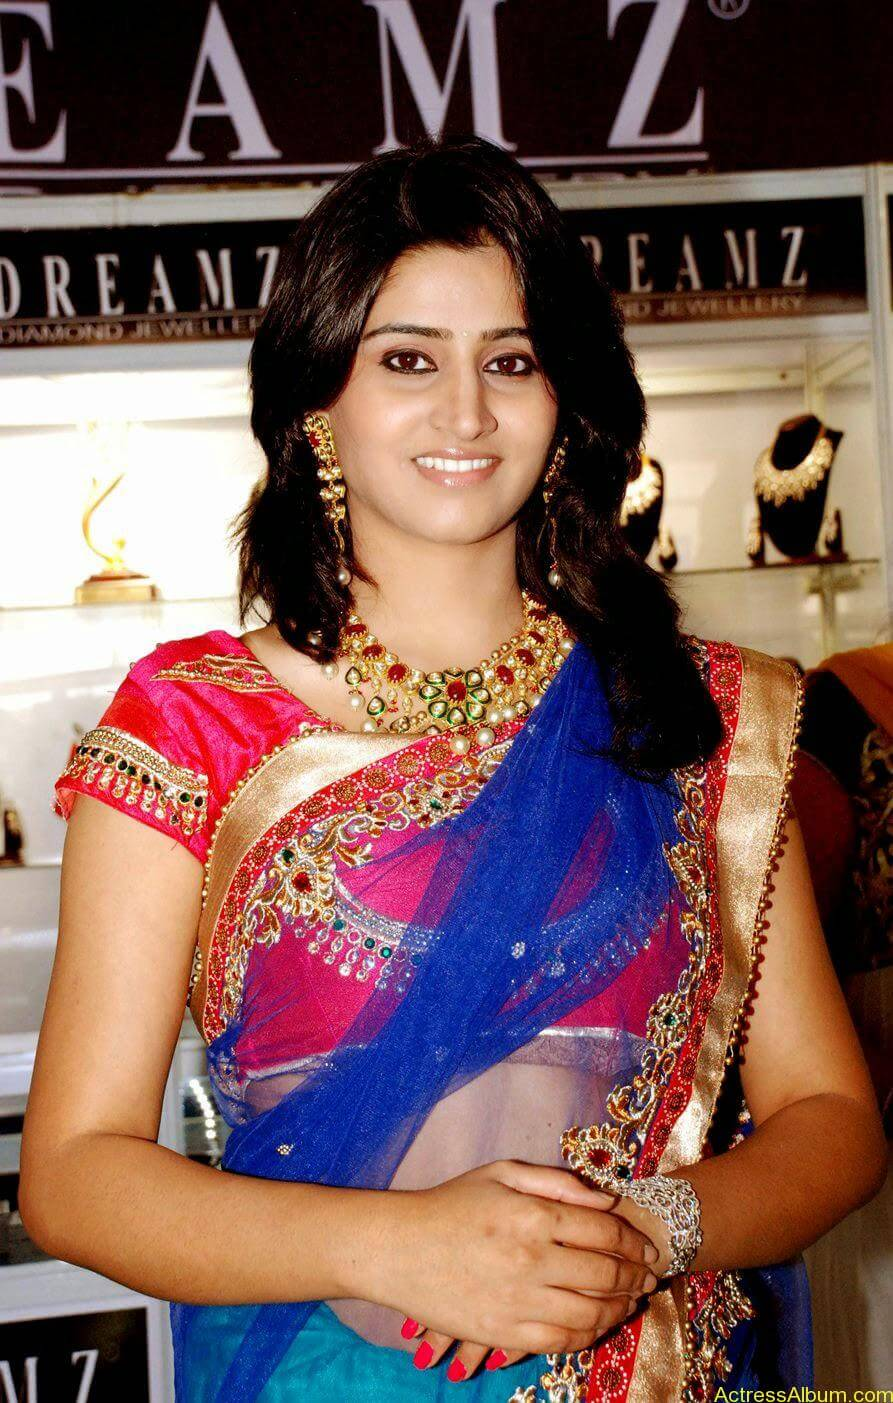 Shamli in saree at jewelry shop opening 1